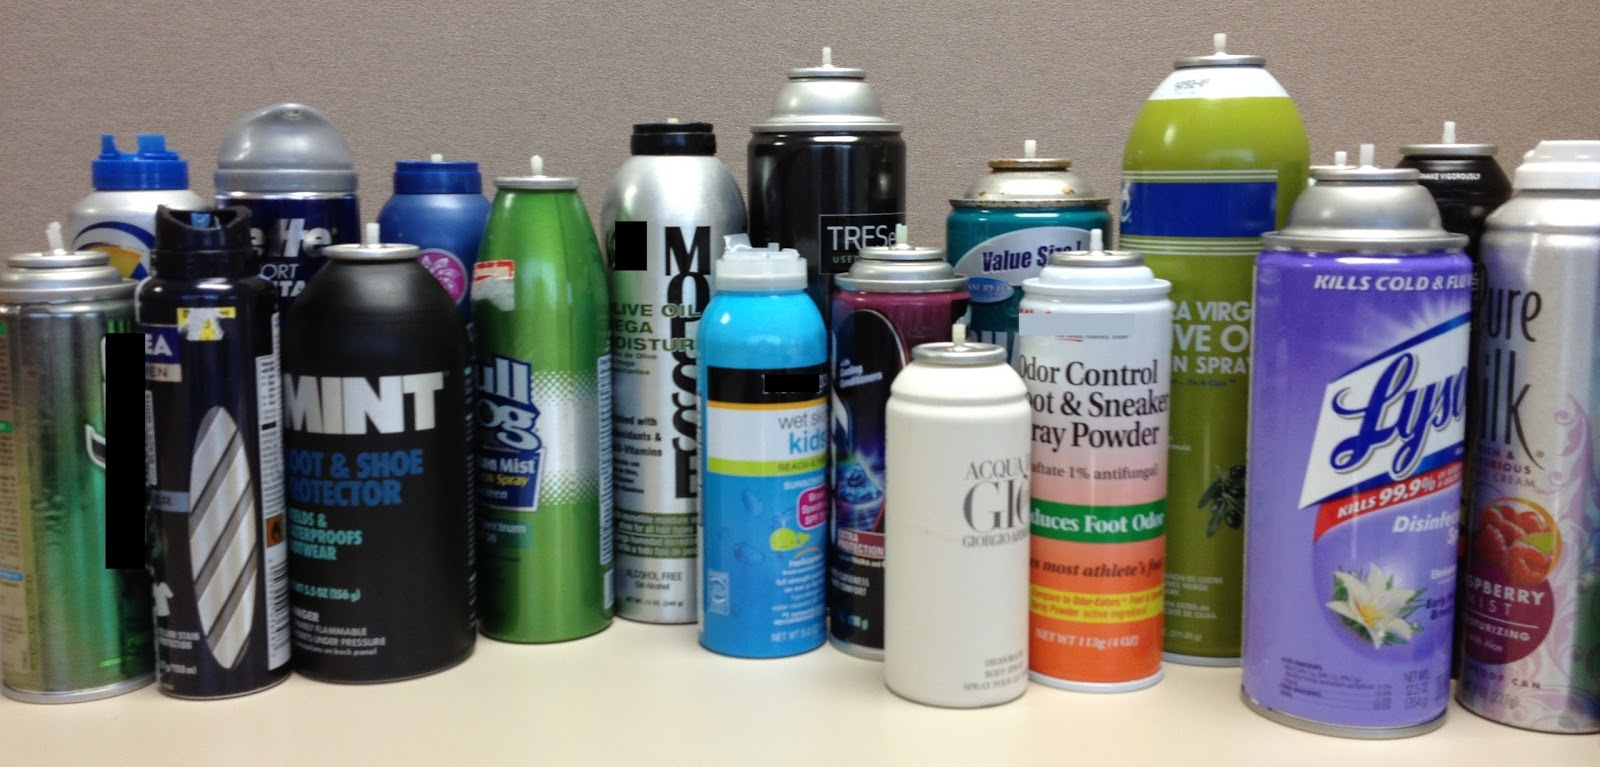 These are samples of several aerosol items that did not make it past the checkpoint in carry-on baggage and were surrendered to TSA at the checkpoint.